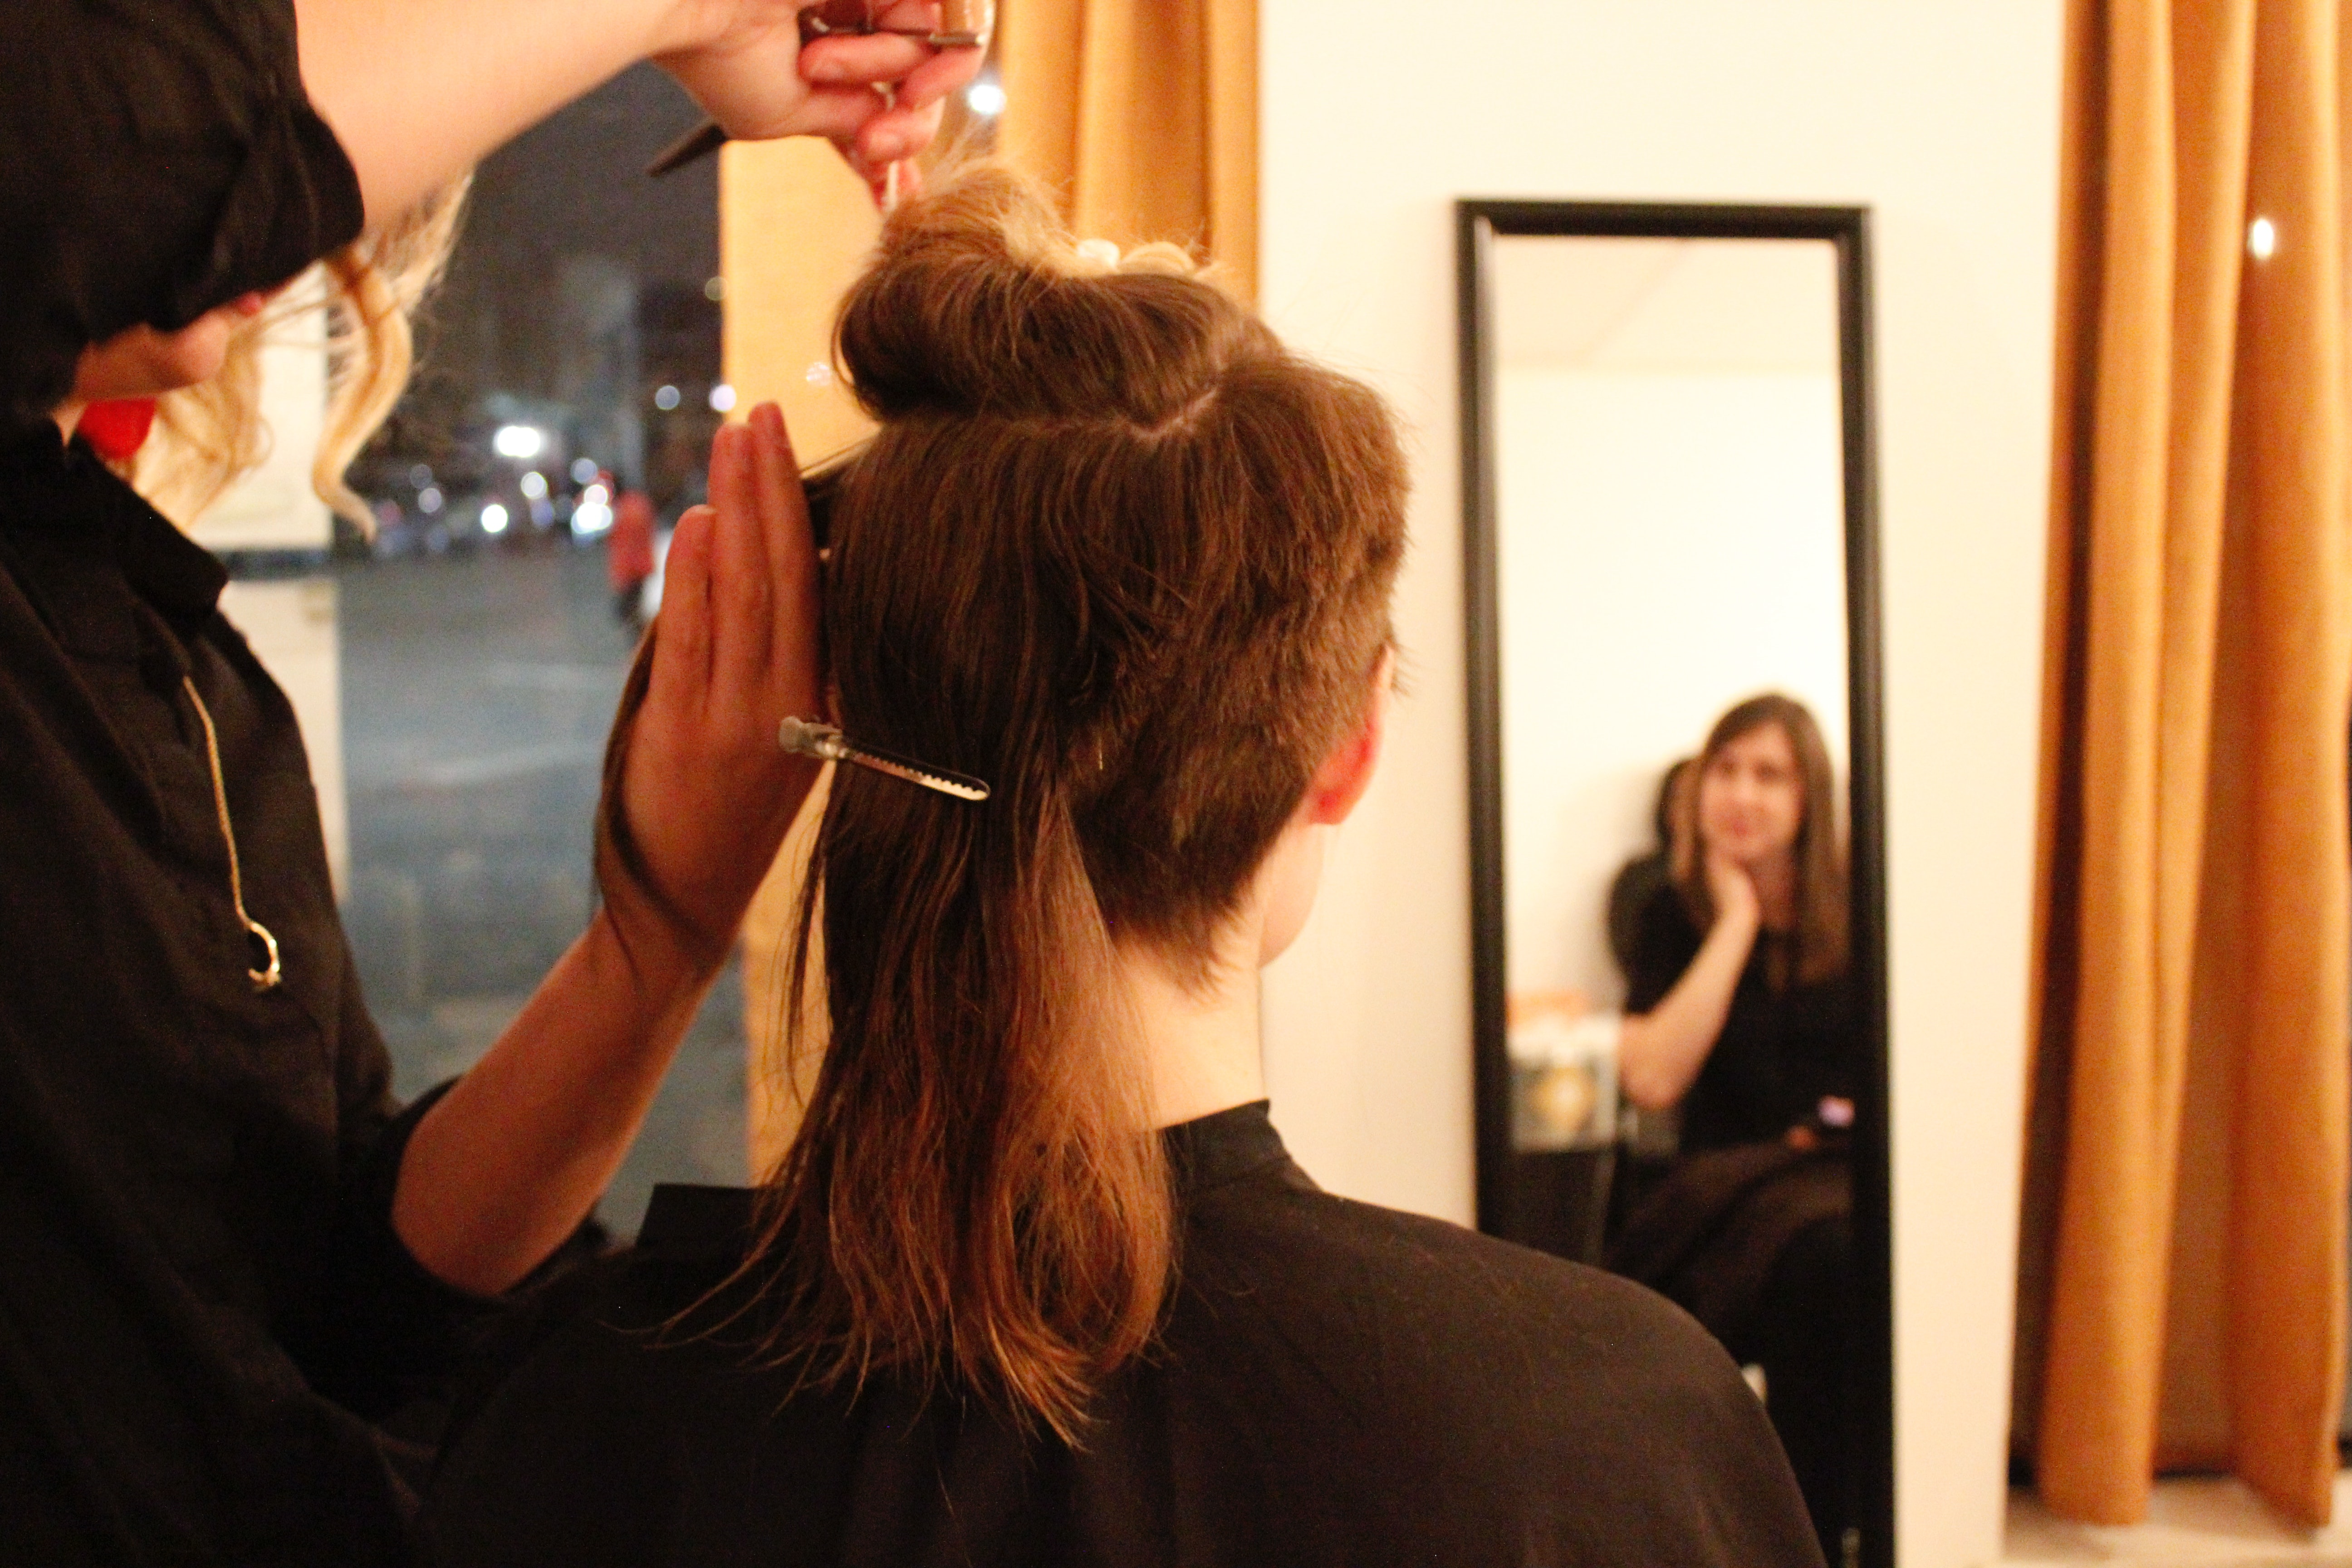 I Spent 10 Hours Watching Women Get Short Haircuts & It Changed